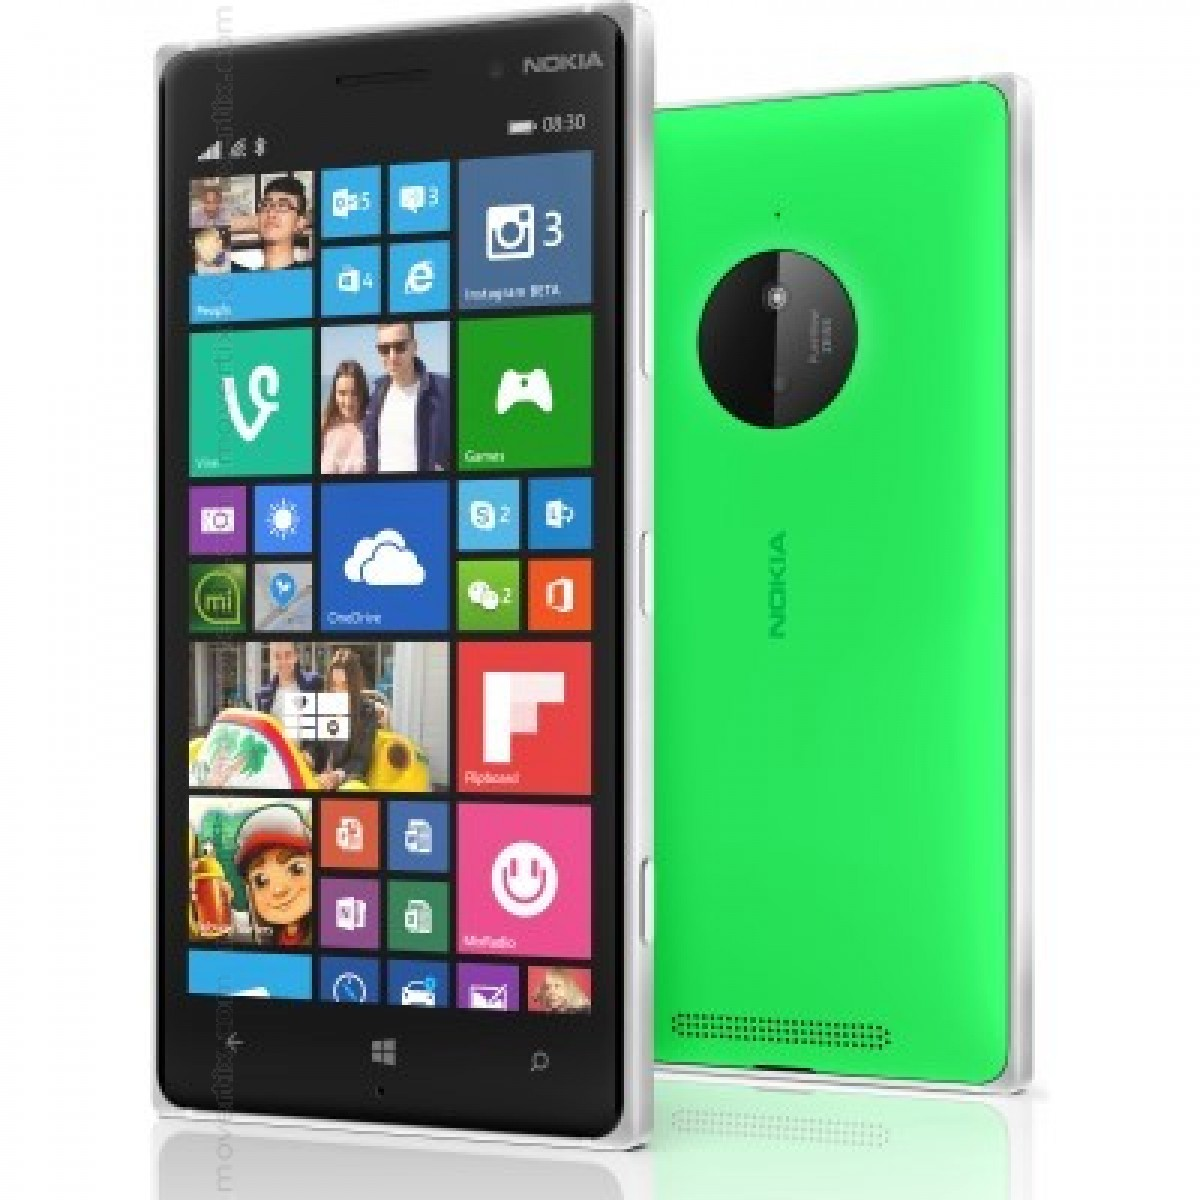 Nokia lumia 830 reviews - The Smartphone Nokia Lumia 830 In Green Color Has Been Designed With Young People In Mind Using Lightweight Materials Such As Polycarbonate To Achieve